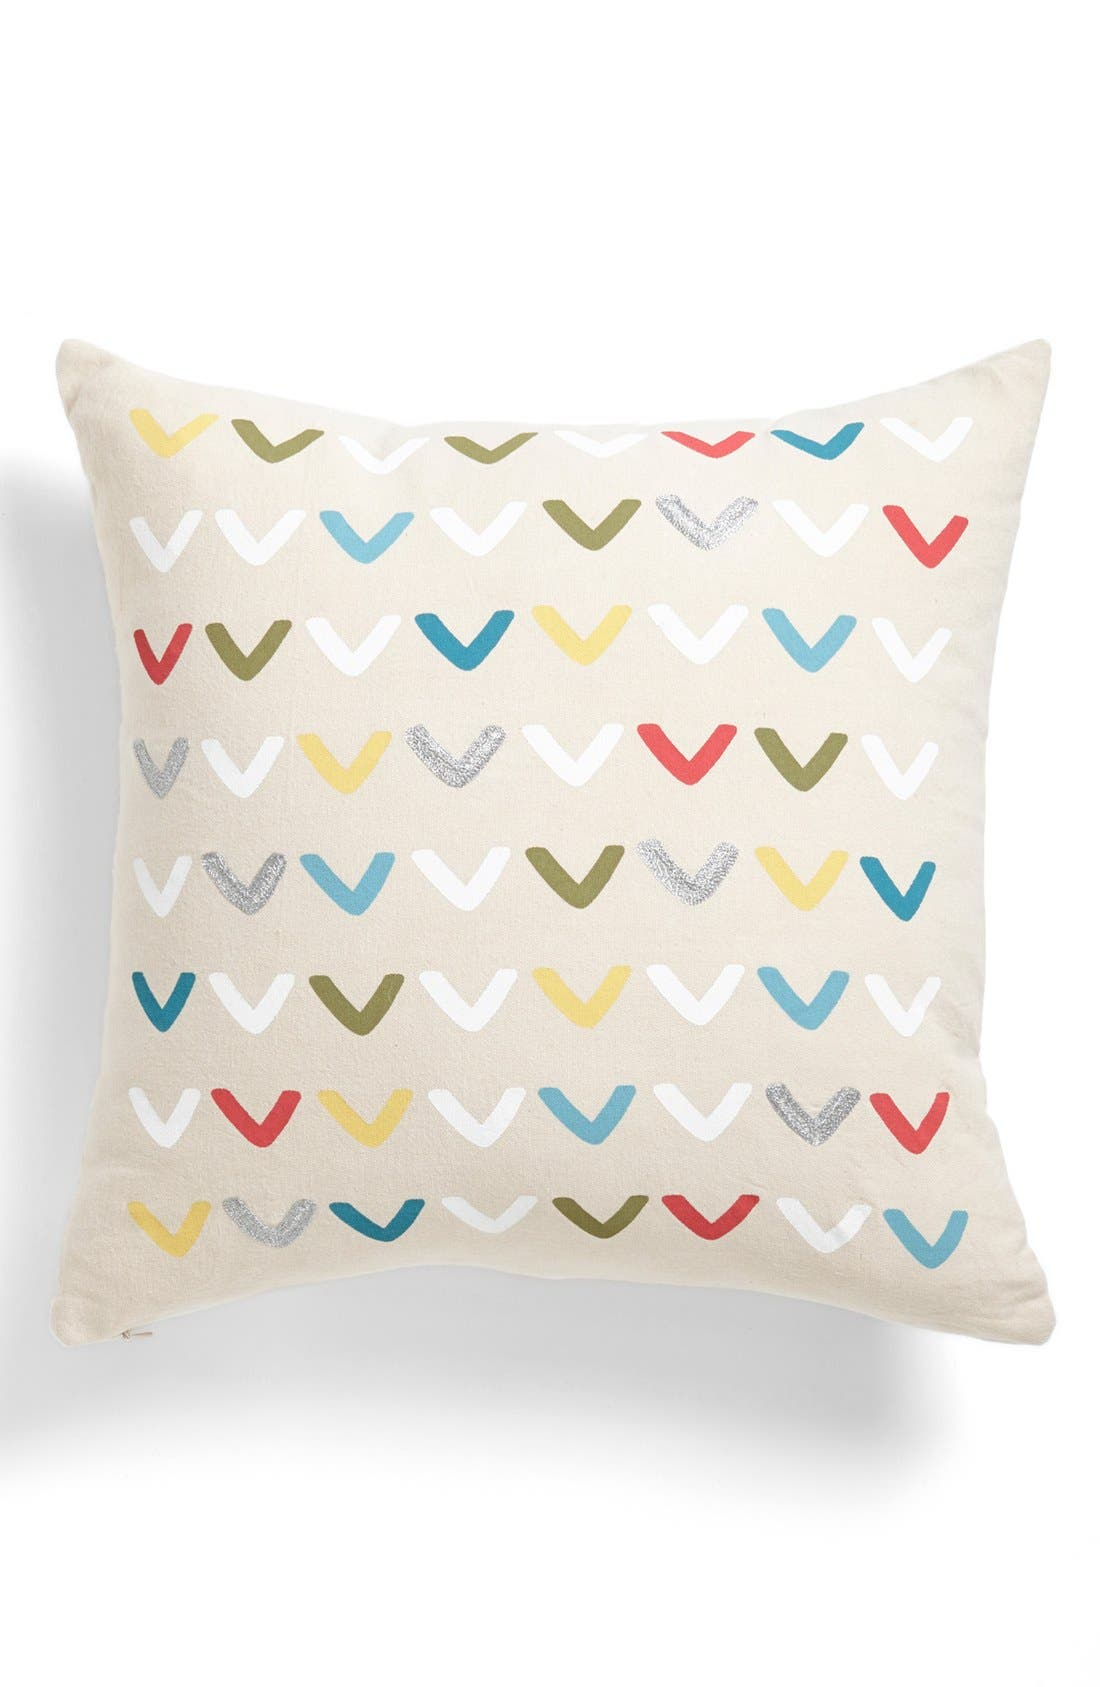 Alternate Image 1 Selected - Nordstrom at Home 'Chevron Party' Pillow